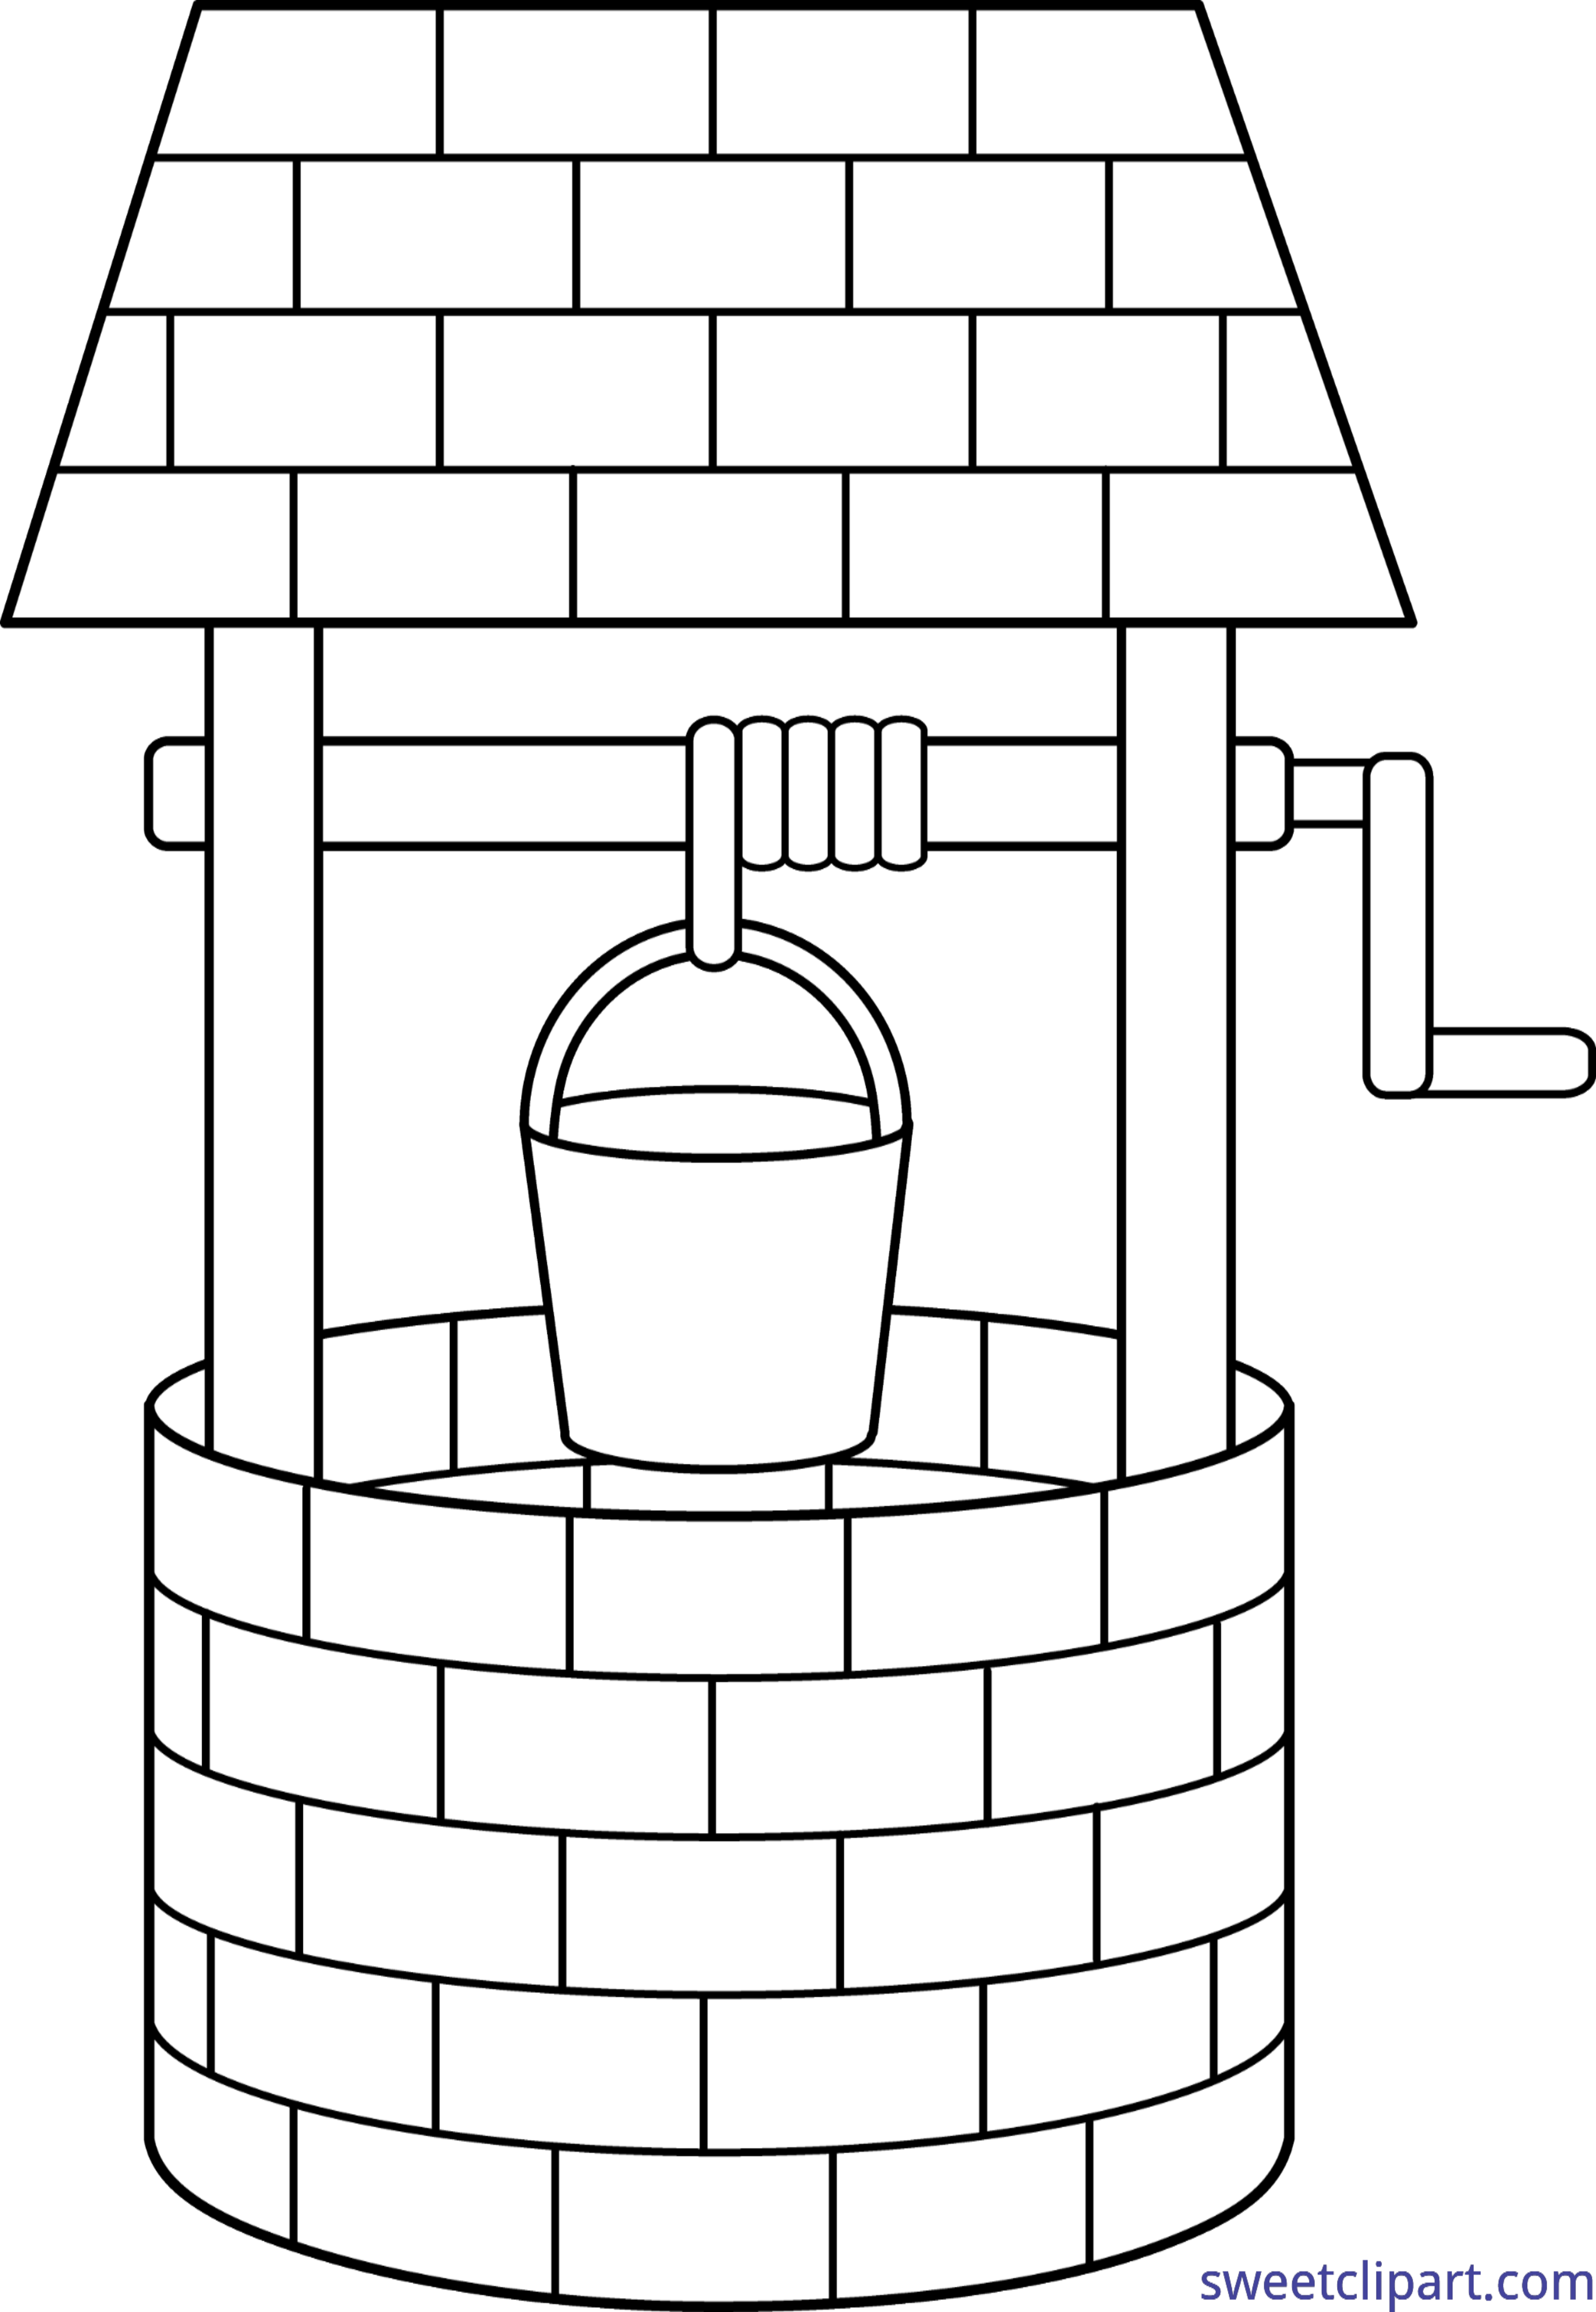 Xylophone clipart water. Wishing well lineart clip